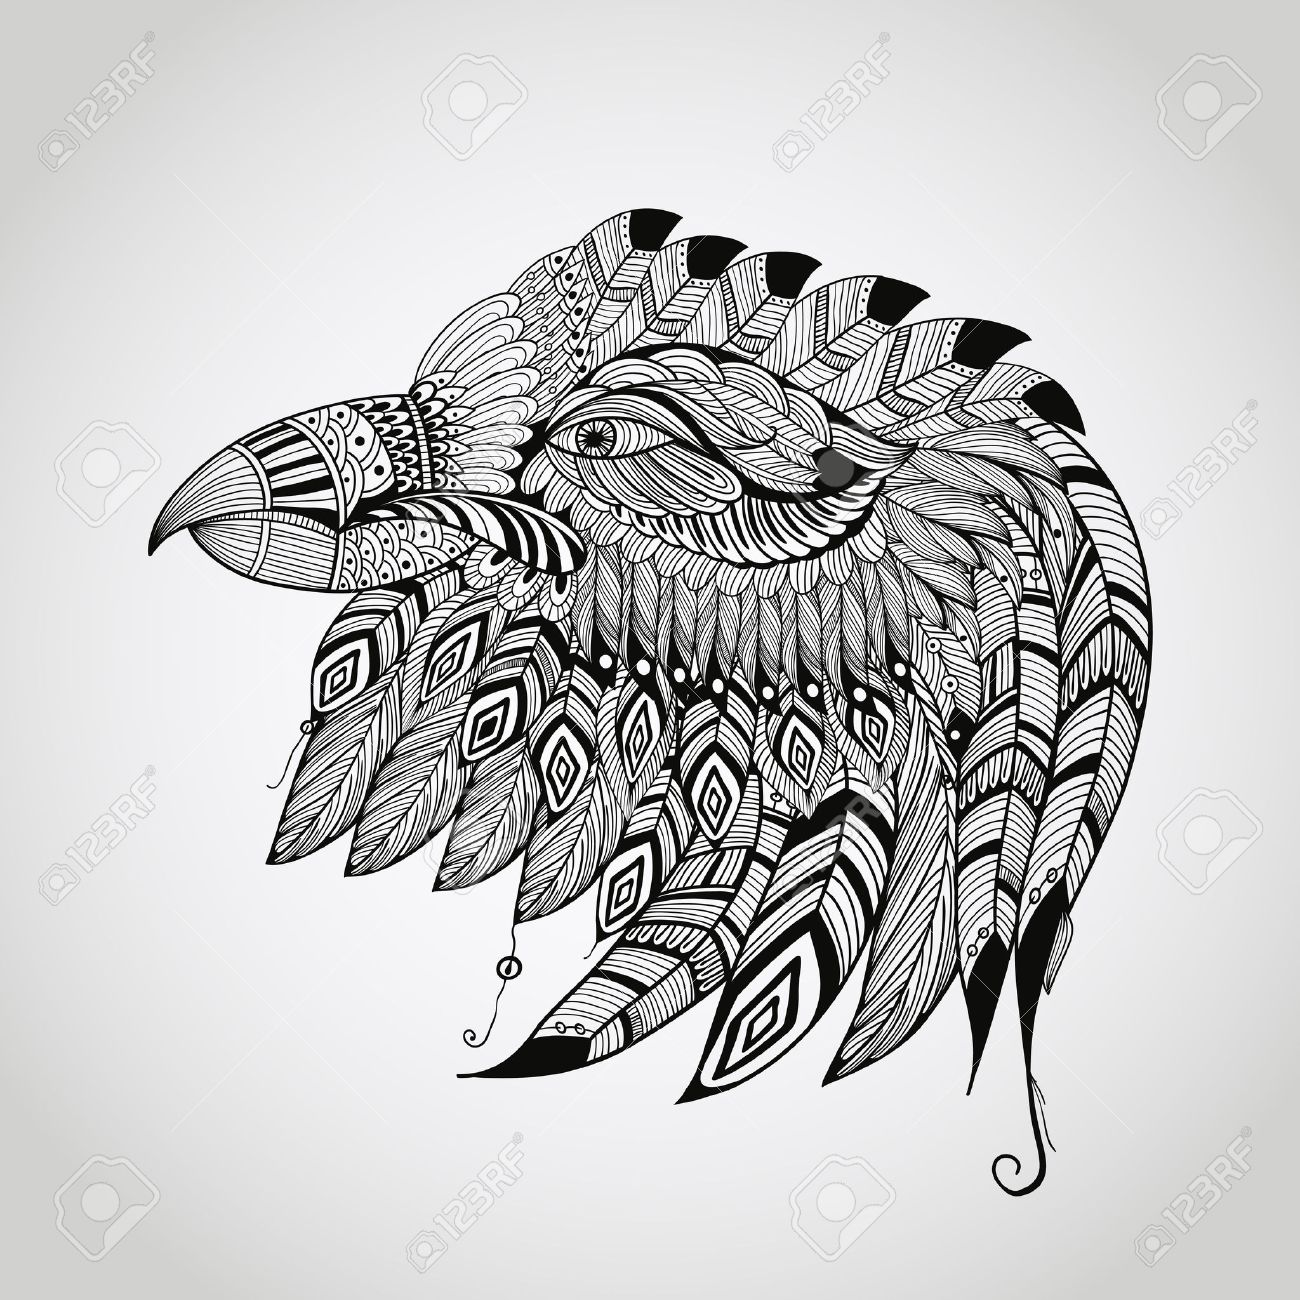 1300x1300 Vector Tattoo Black Hand Drawn, Highly Detailed Eagle Head